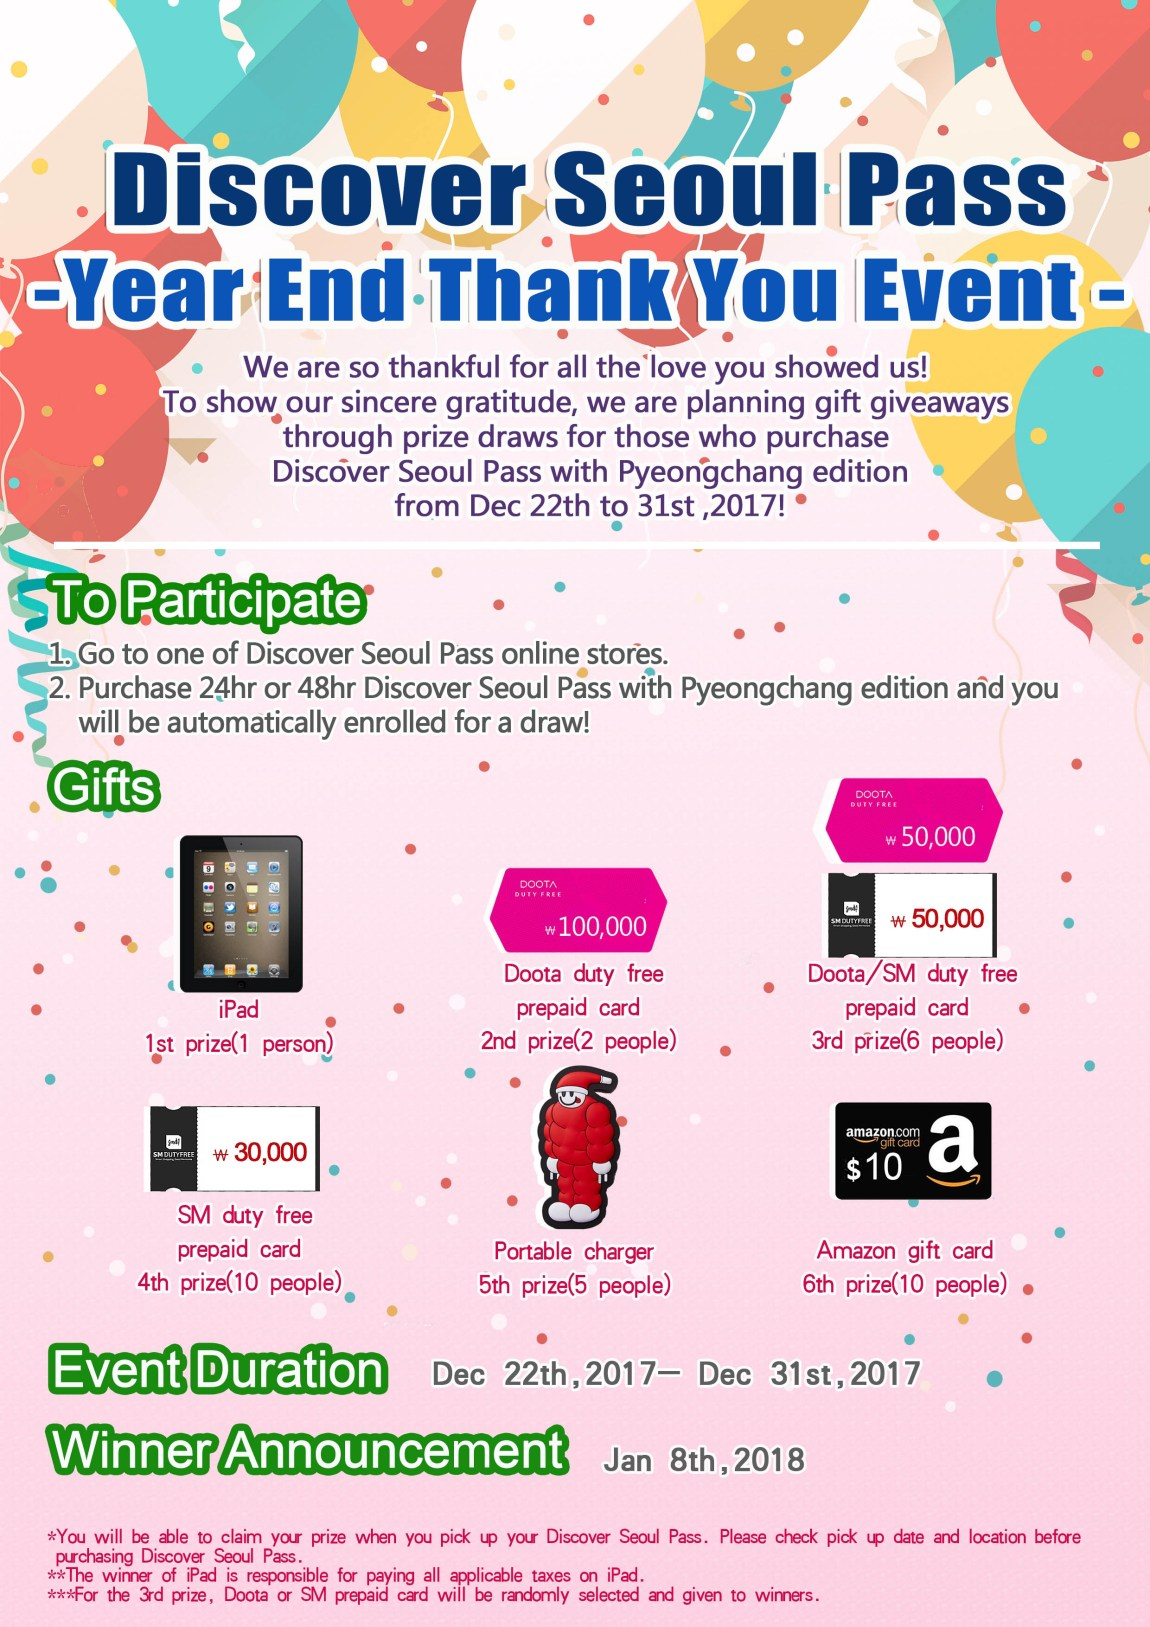 Discover Seoul Pass Year End Event